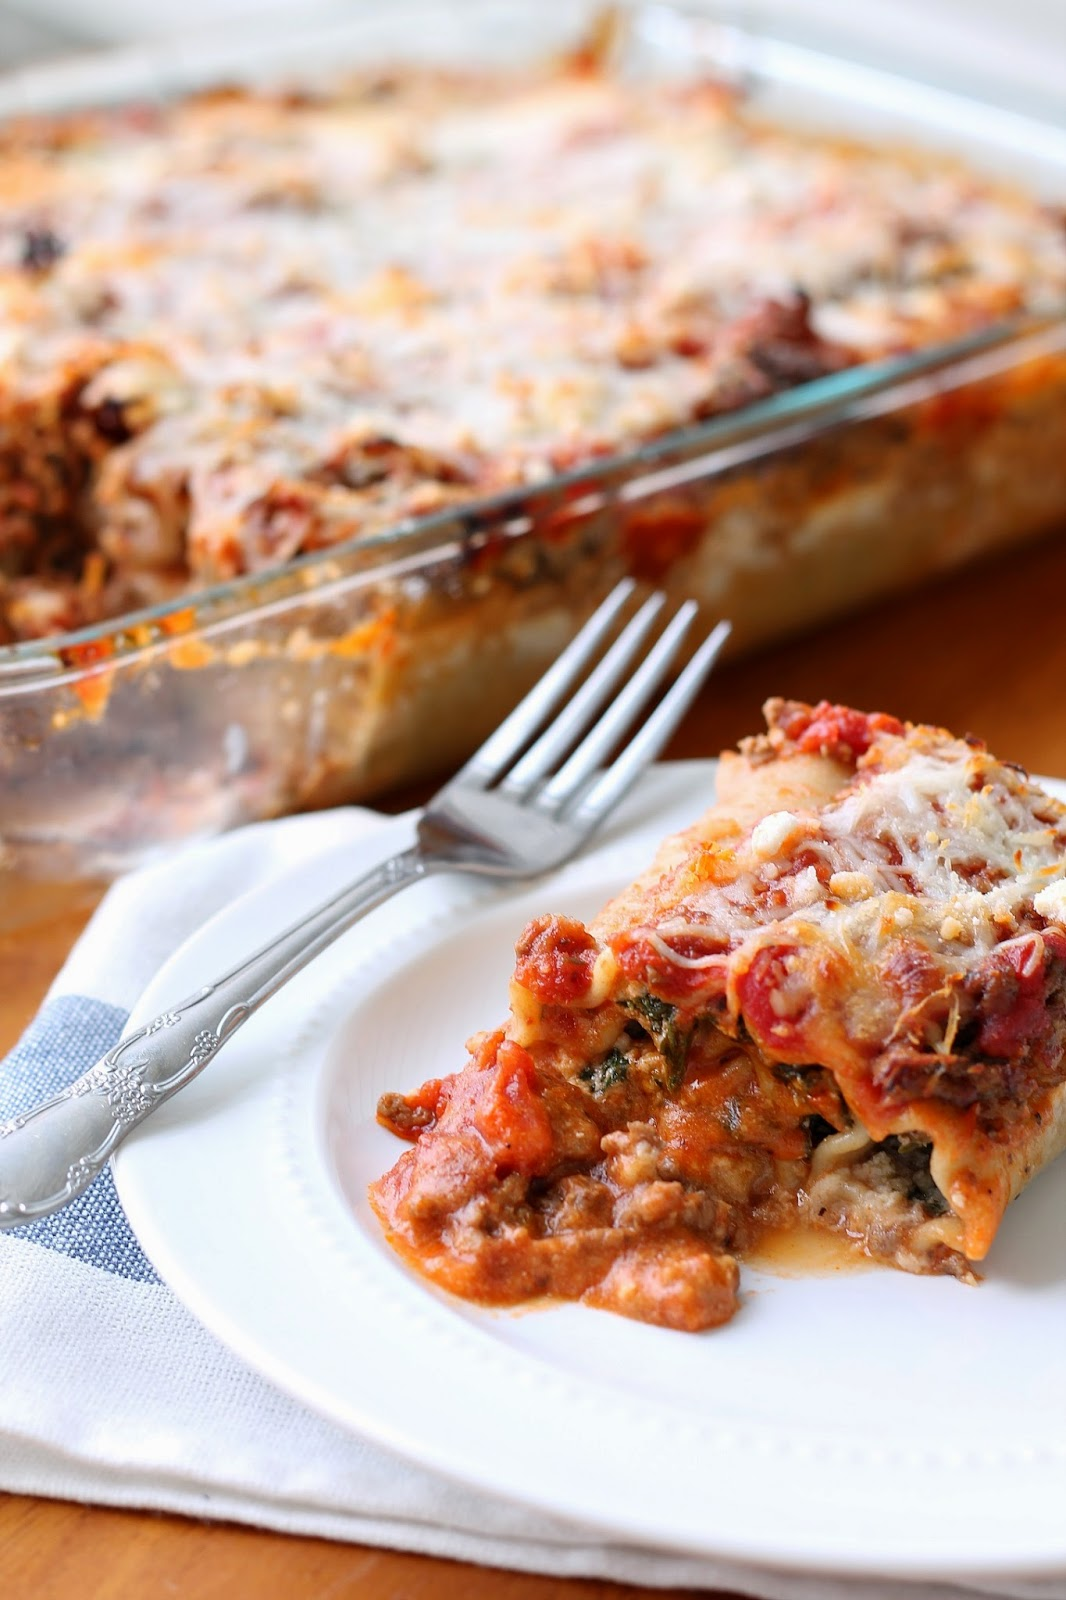 My Grandmother's Recipes - Lasagna Rolls via @labride